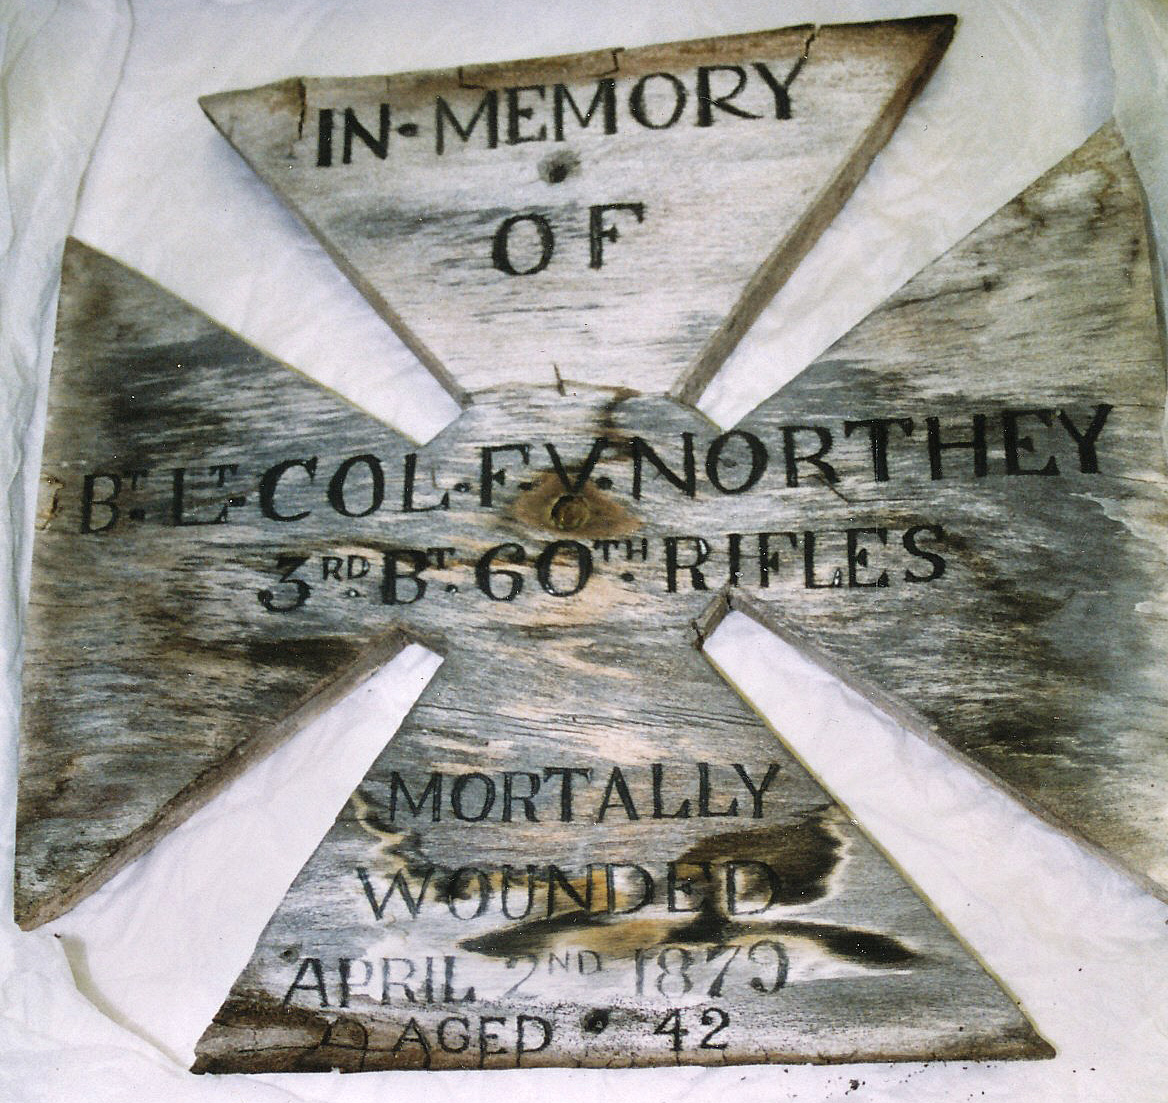 a photo of a wooden cross with the name of soldier in memory of